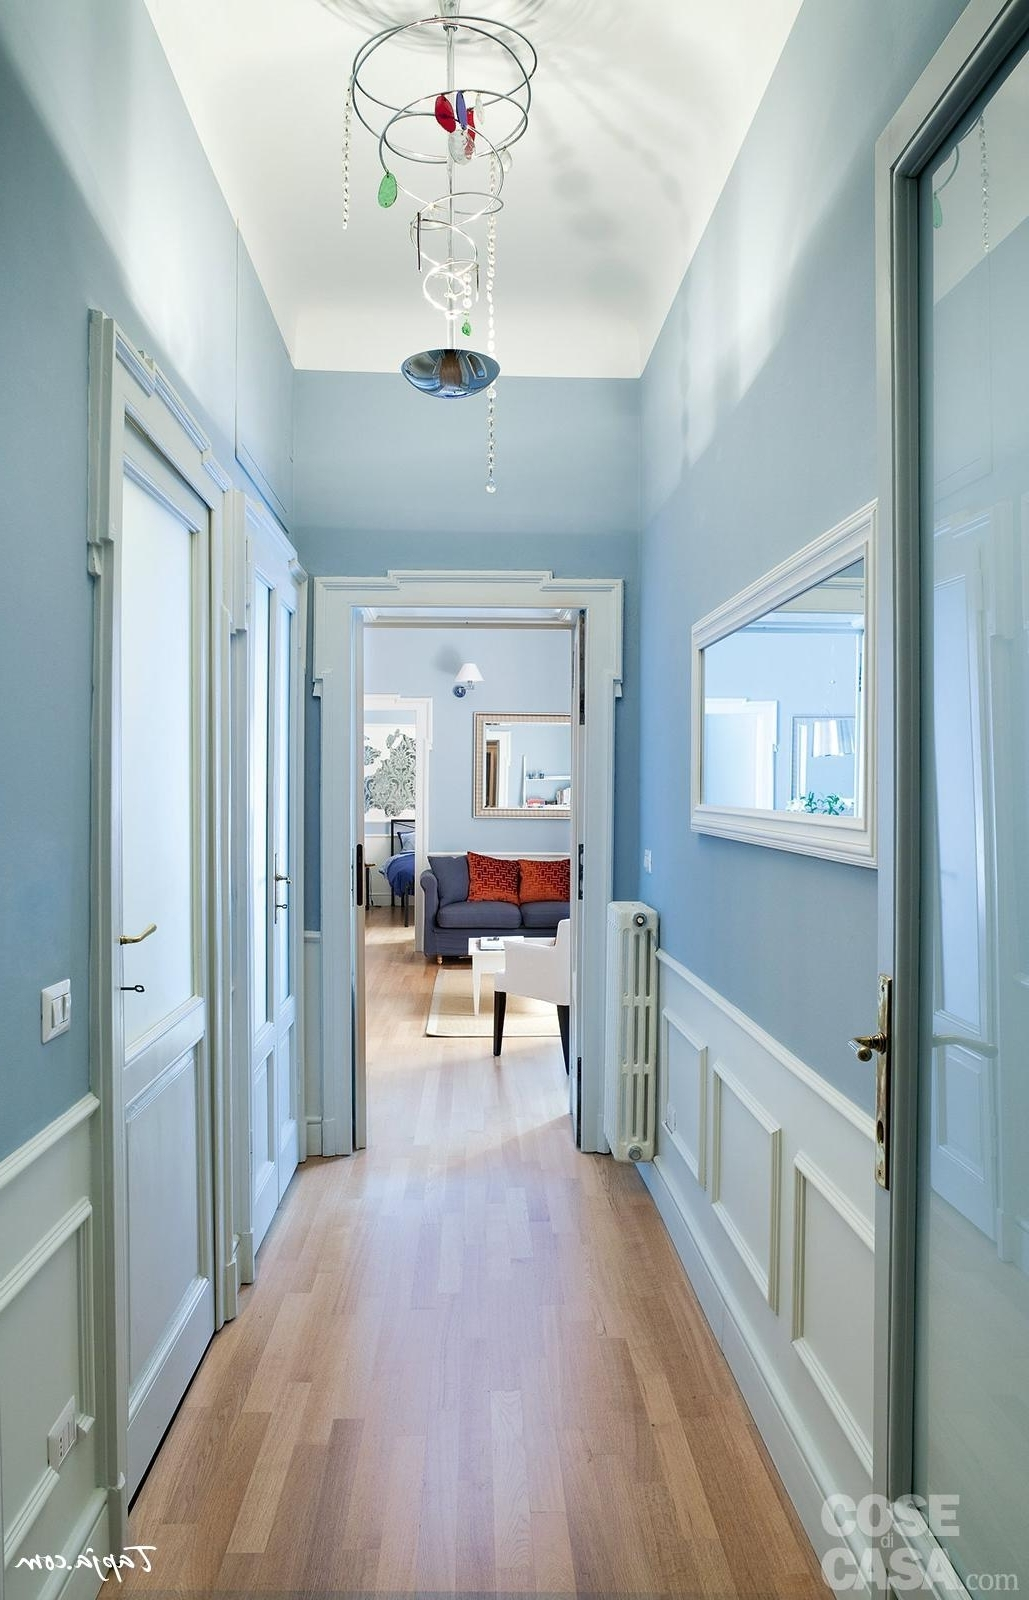 Well Known Wall Art Ideas For Hallways With Regard To Black White Stripped Floor Rug Hallway Wall Art Ideas Blue White (View 15 of 15)